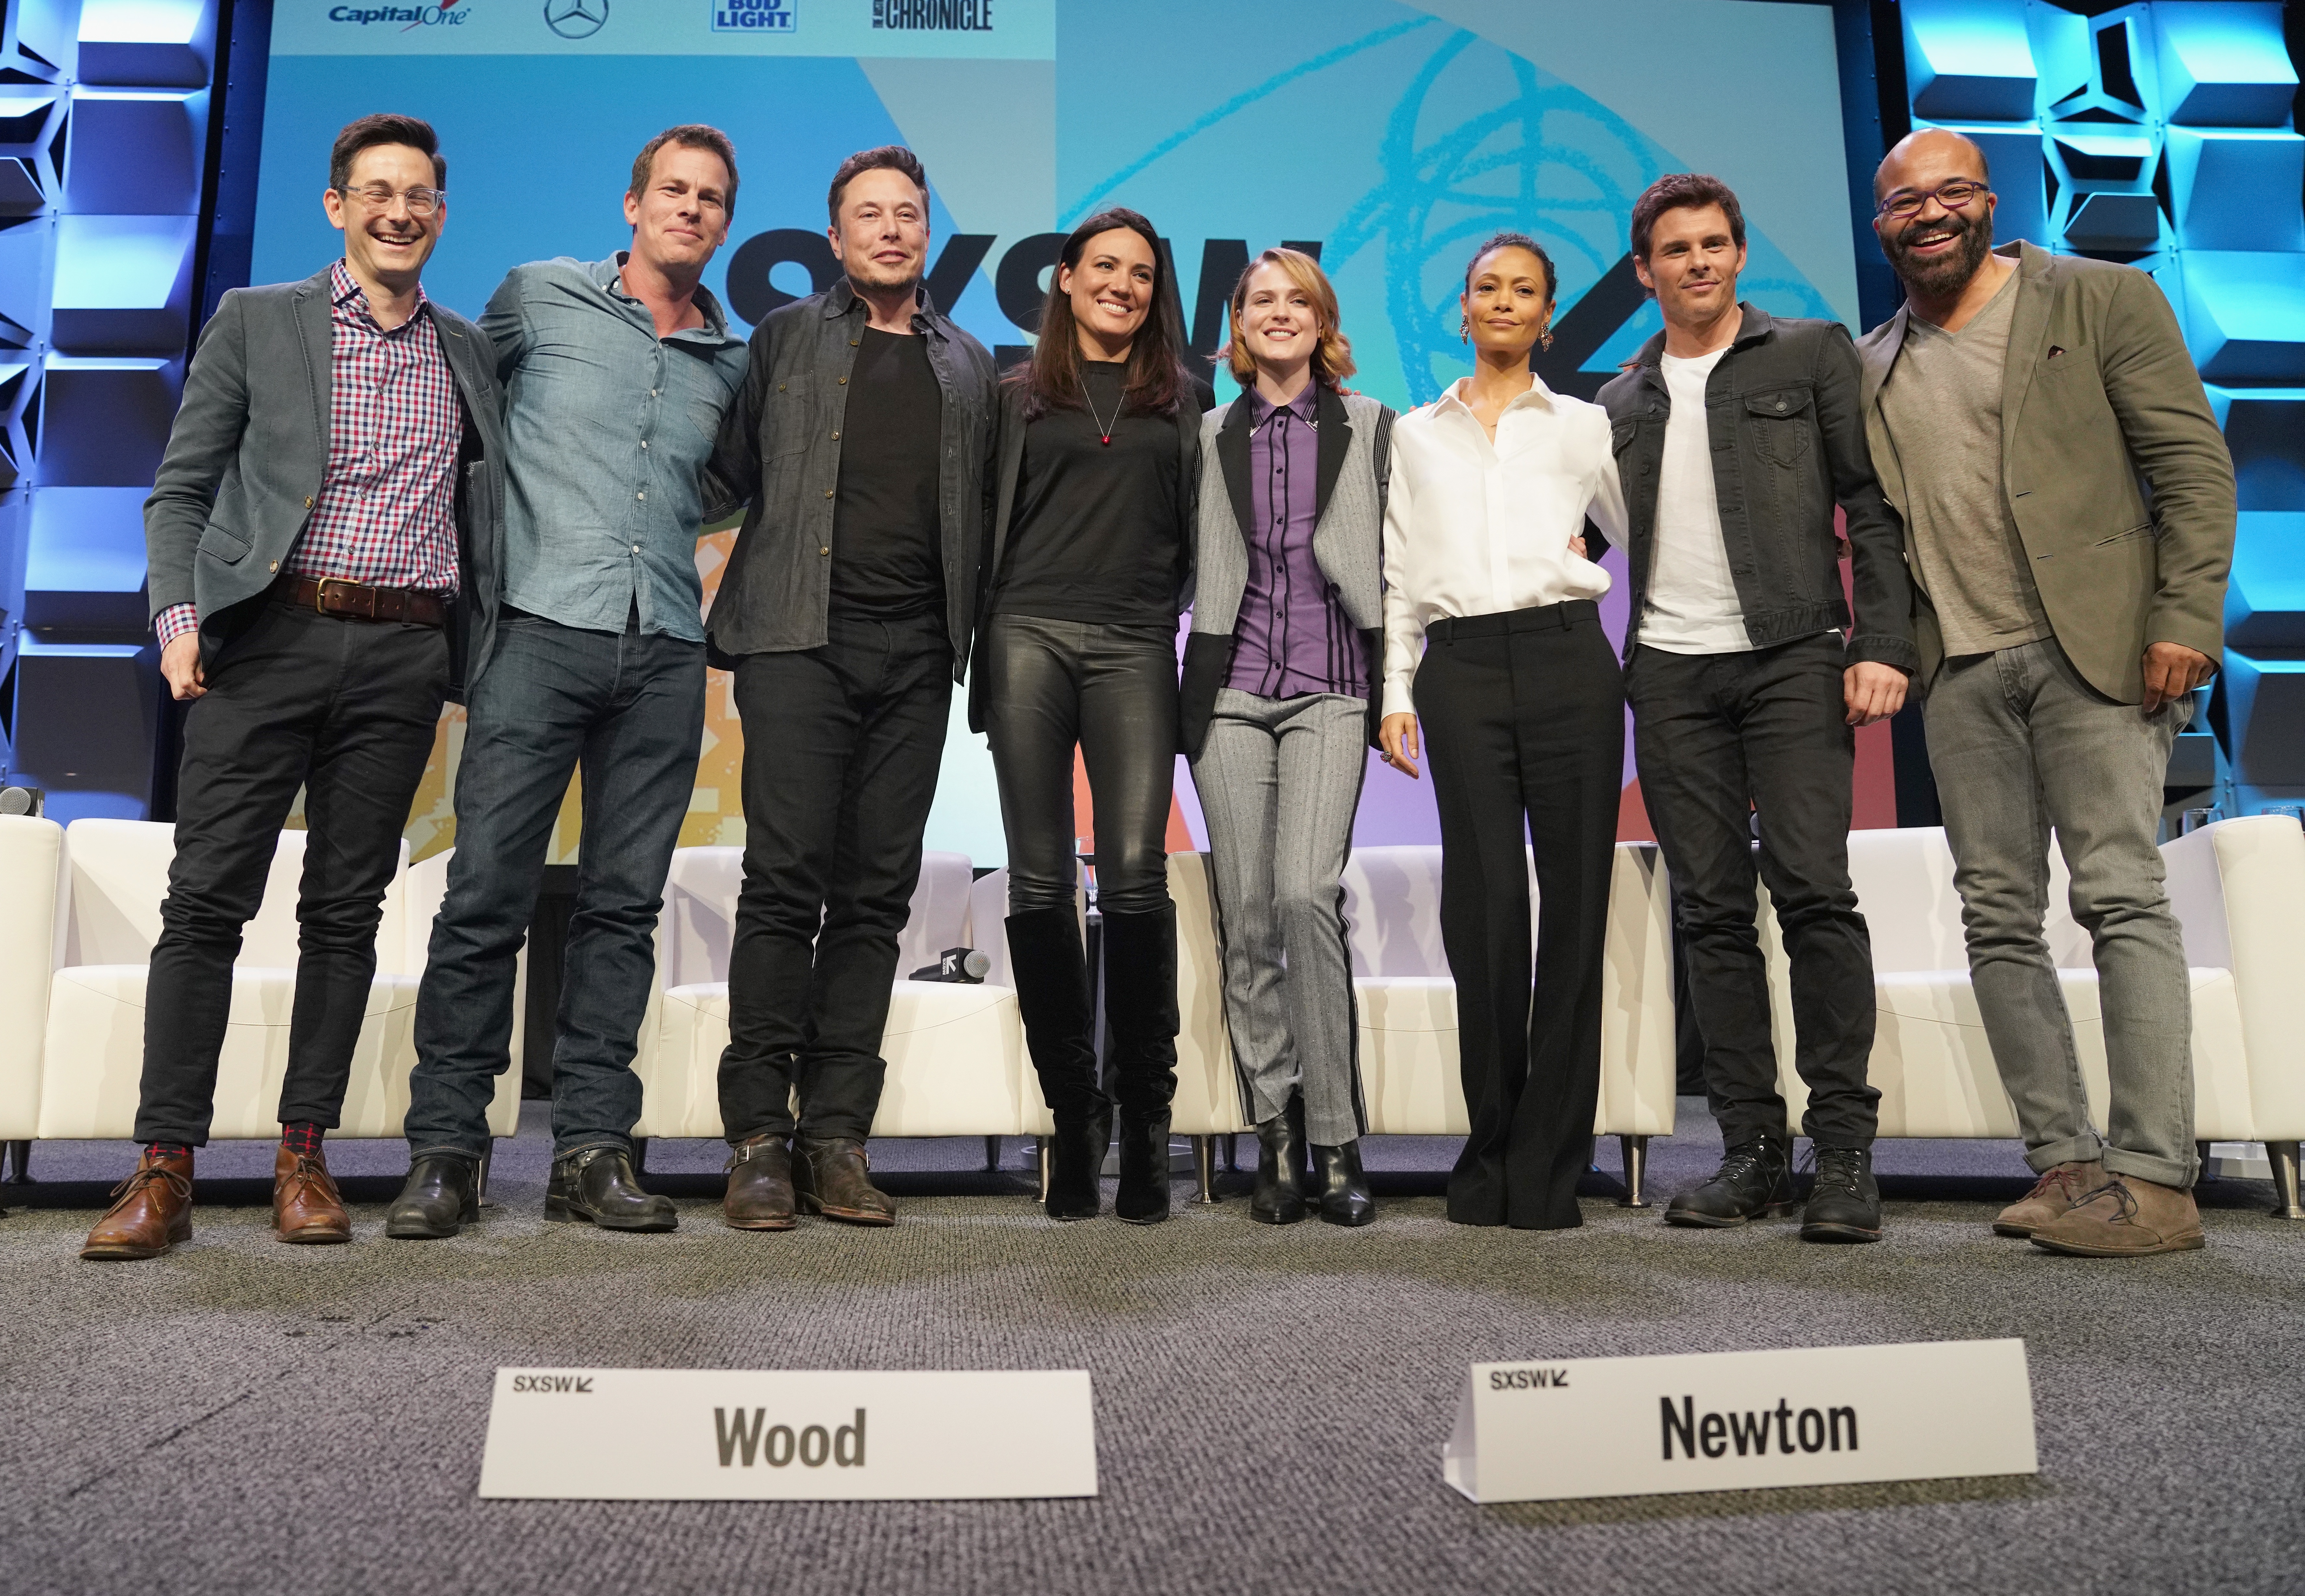 : (L-R) Jason Tanz and showrunner/creator Jonathan Nolan, CEO of SpaceX Elon Musk, showrunner/creator Lisa Joy, actors Evan Rachel Wood, Thandie Newton, James Marsden and Jeffrey Wright speak onstage at the Featured Session during SXSW at Austin Convention Center on March 10, 2018 in Austin, Texas. (Photo by Amy E. Price/Getty Images for SXSW)